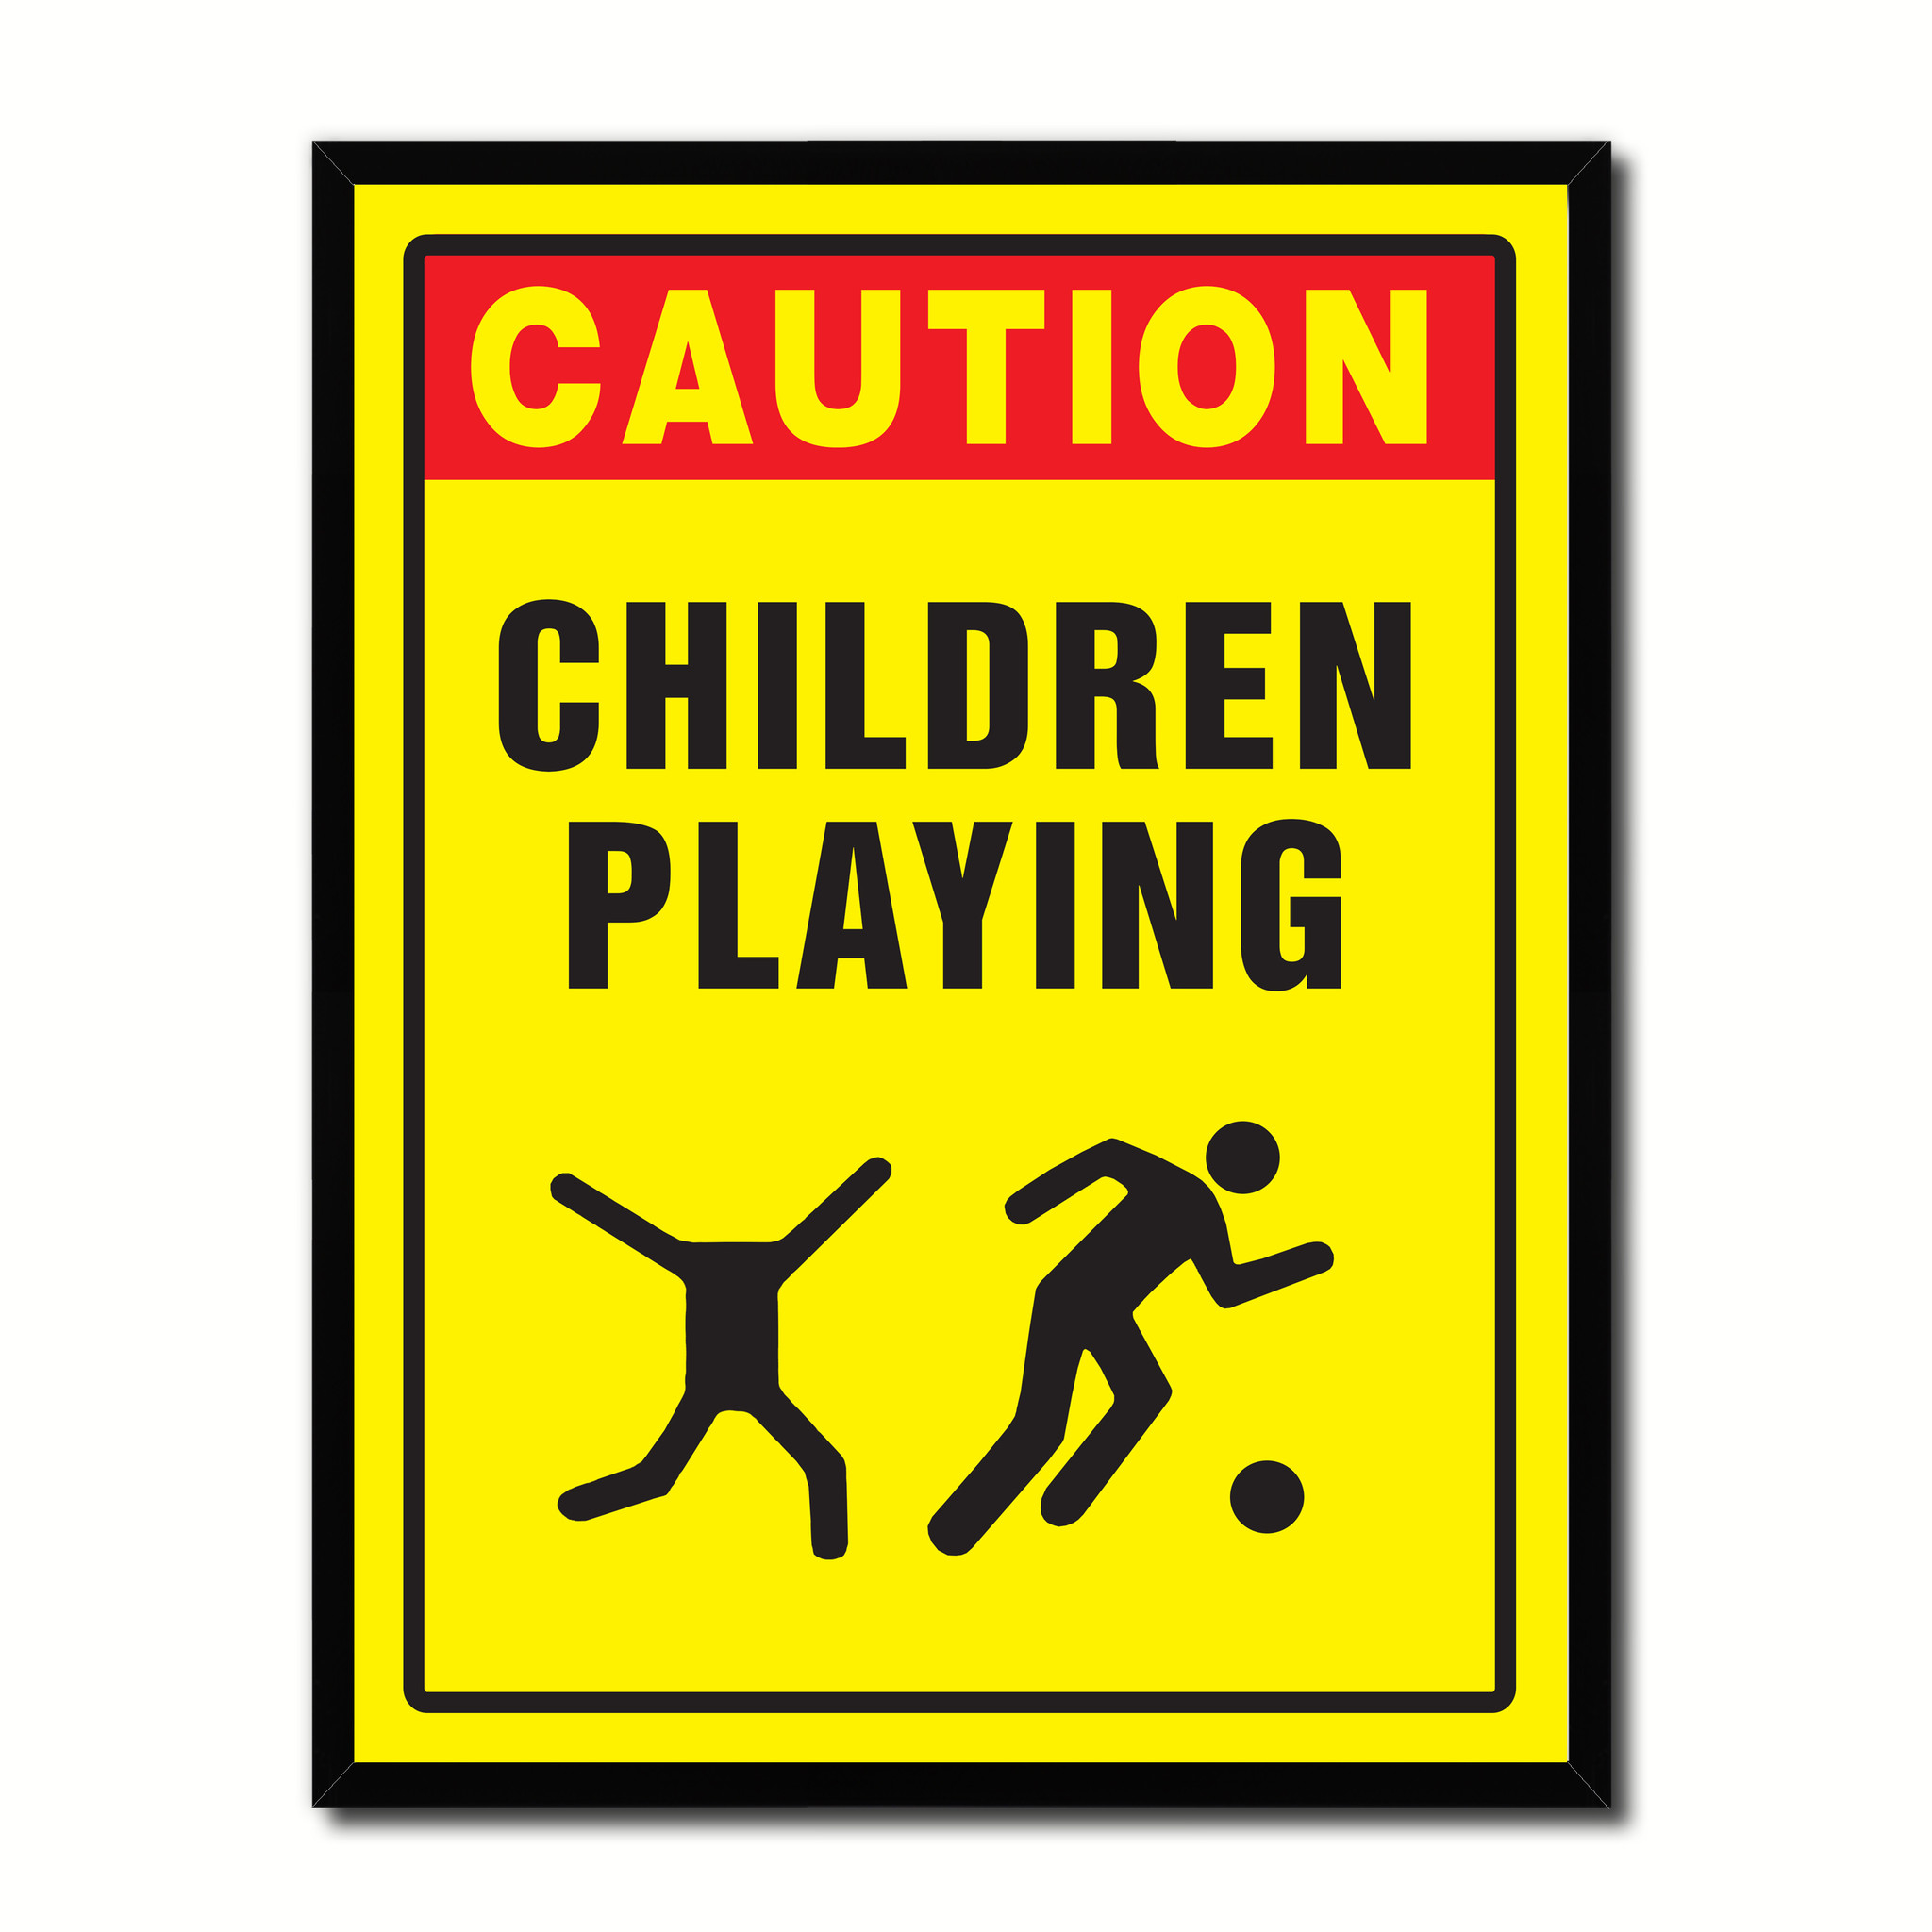 """Caution Children Playing Caution Sign Gift Ideas Wall Art Home D?cor Gift Ideas Canvas Pint - 7\""""x9\"""" 57f6c845e2246165175807f6"""